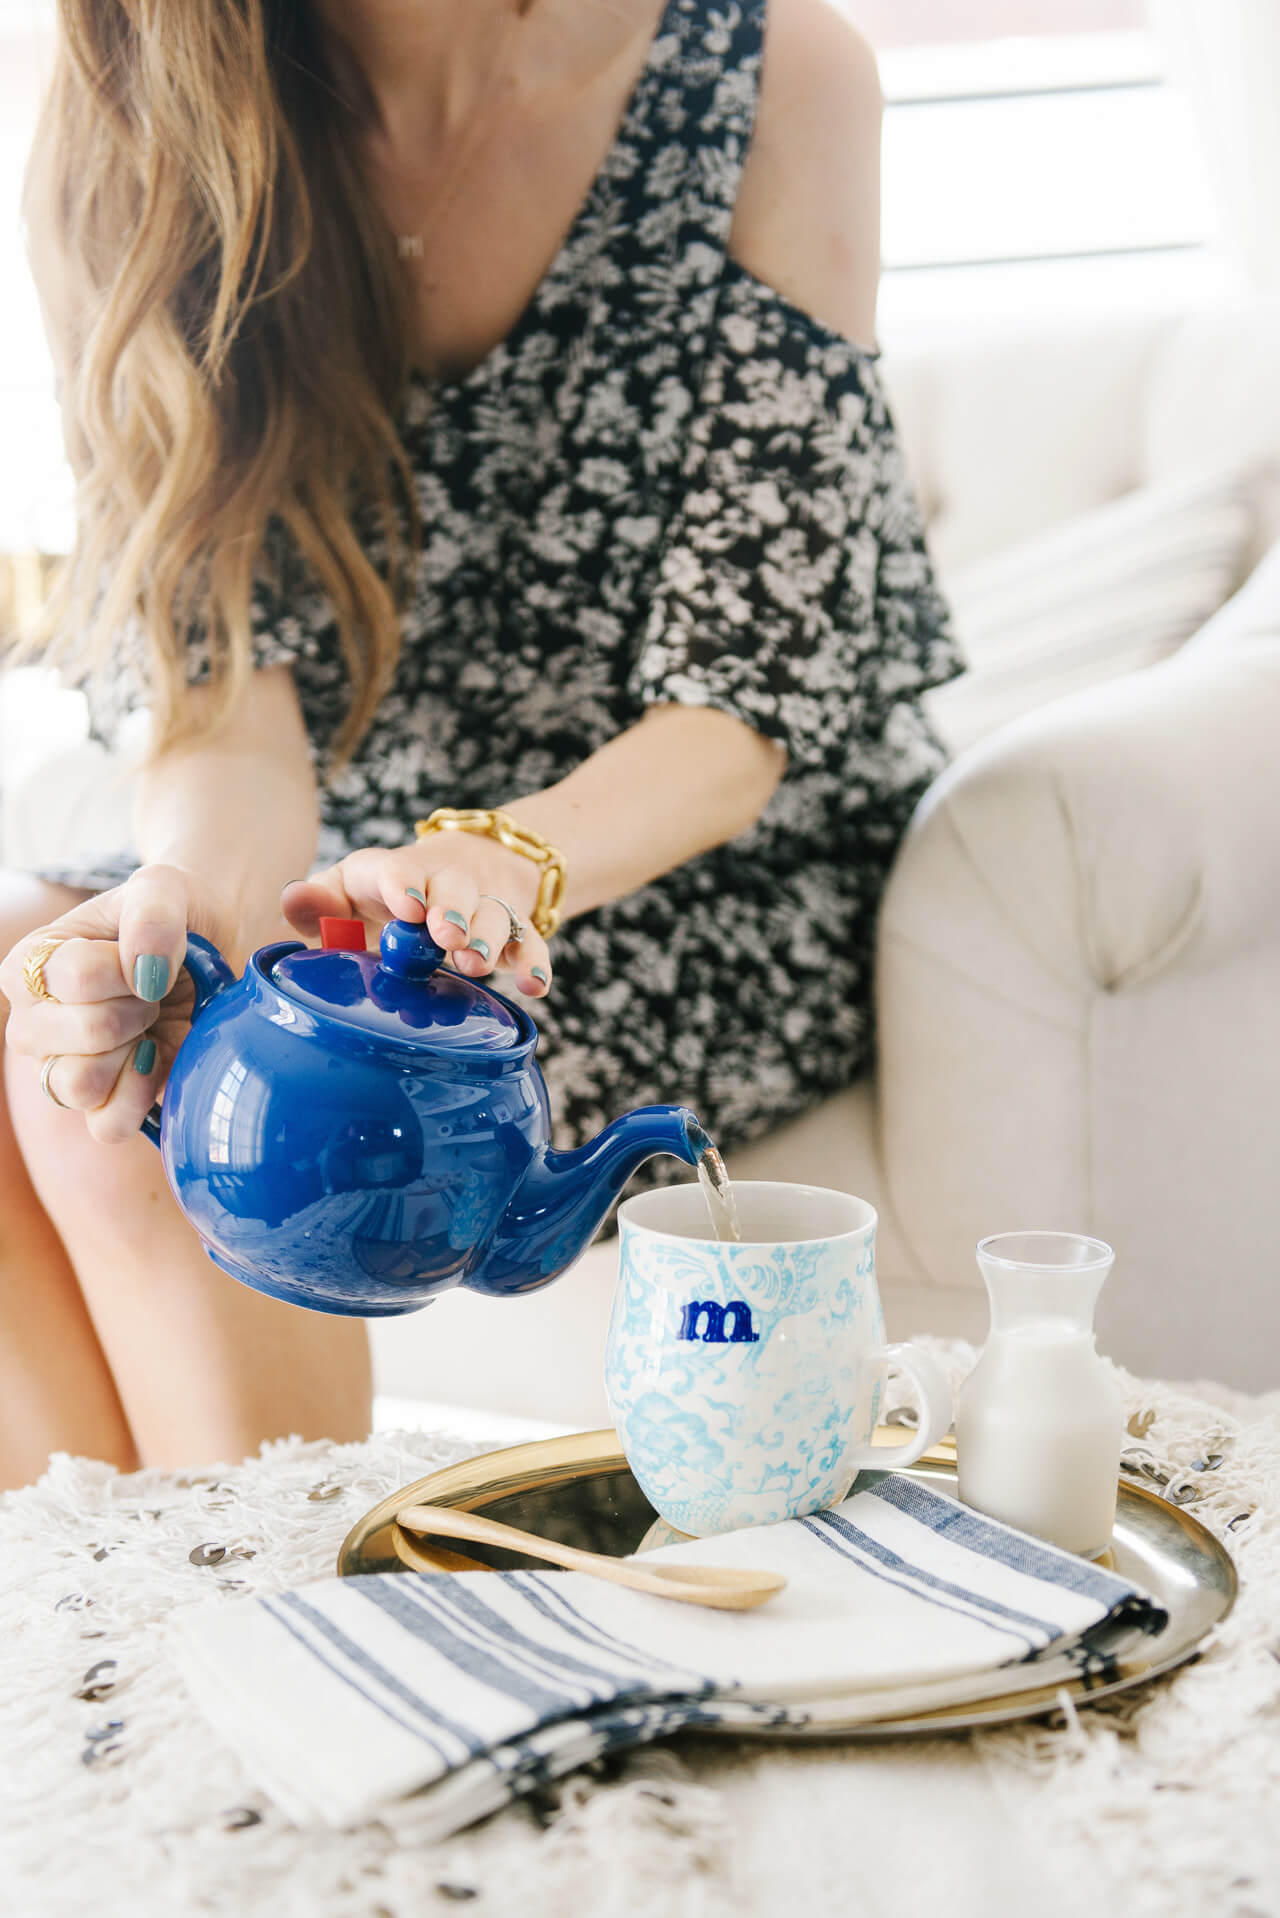 try drinking tea instead of coffee in the mornings